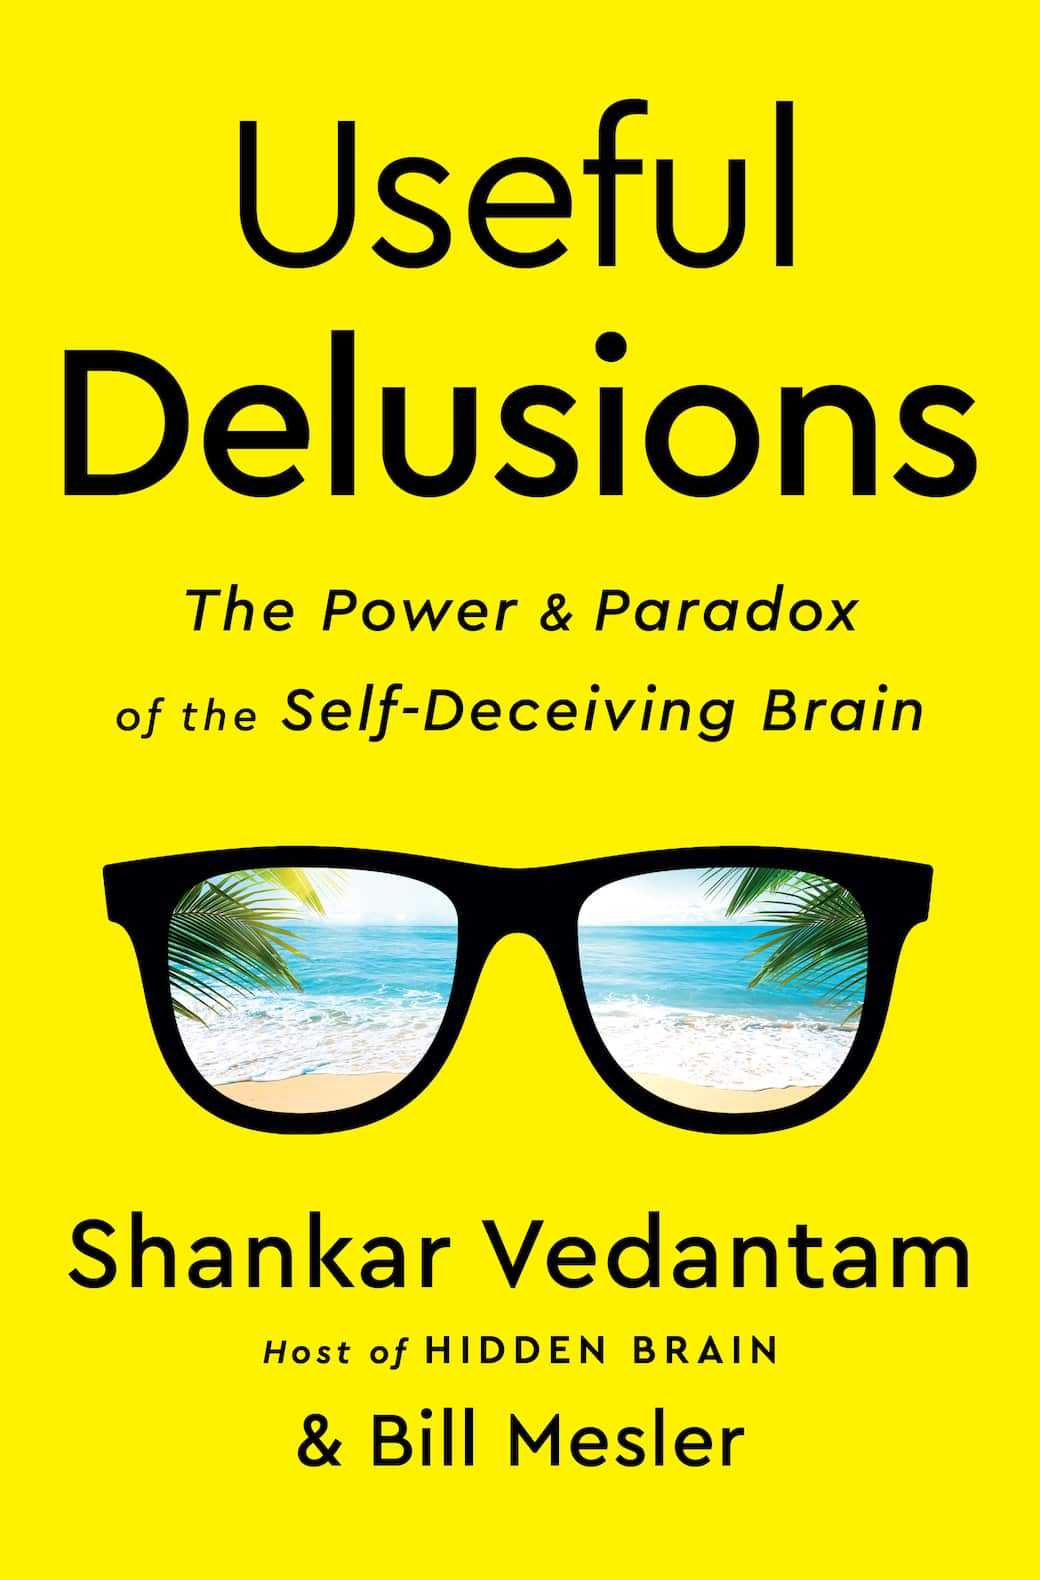 Useful Delusions The Power and Paradox of the Self-Deceiving Brain by Shankar Vedantam